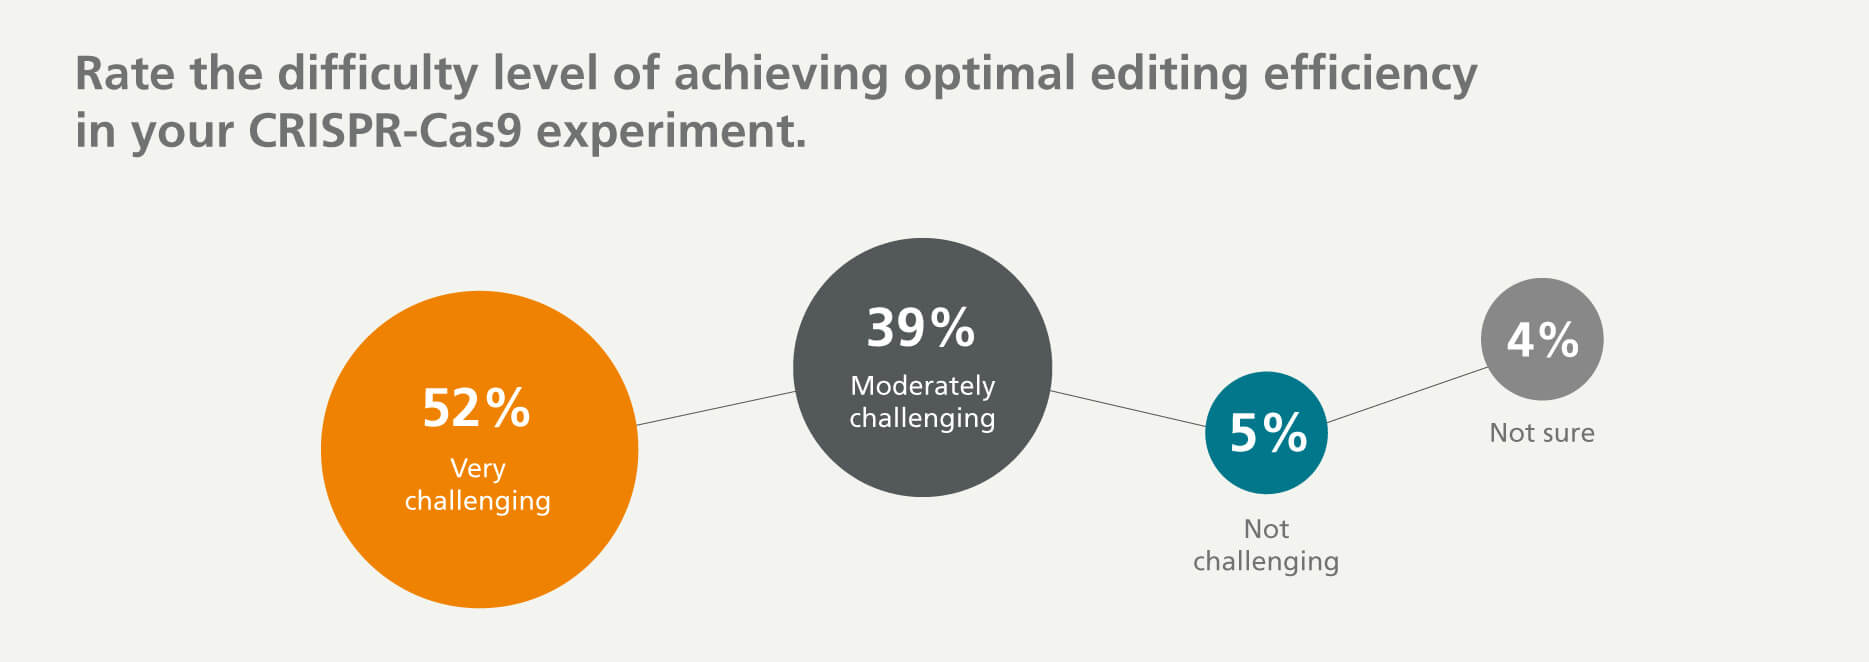 52% of survey respondents find it very challenging to achieve optimal editing efficiency, 39% find it moderately challenging, 5% did not find it challenging, and 4% are not sure.